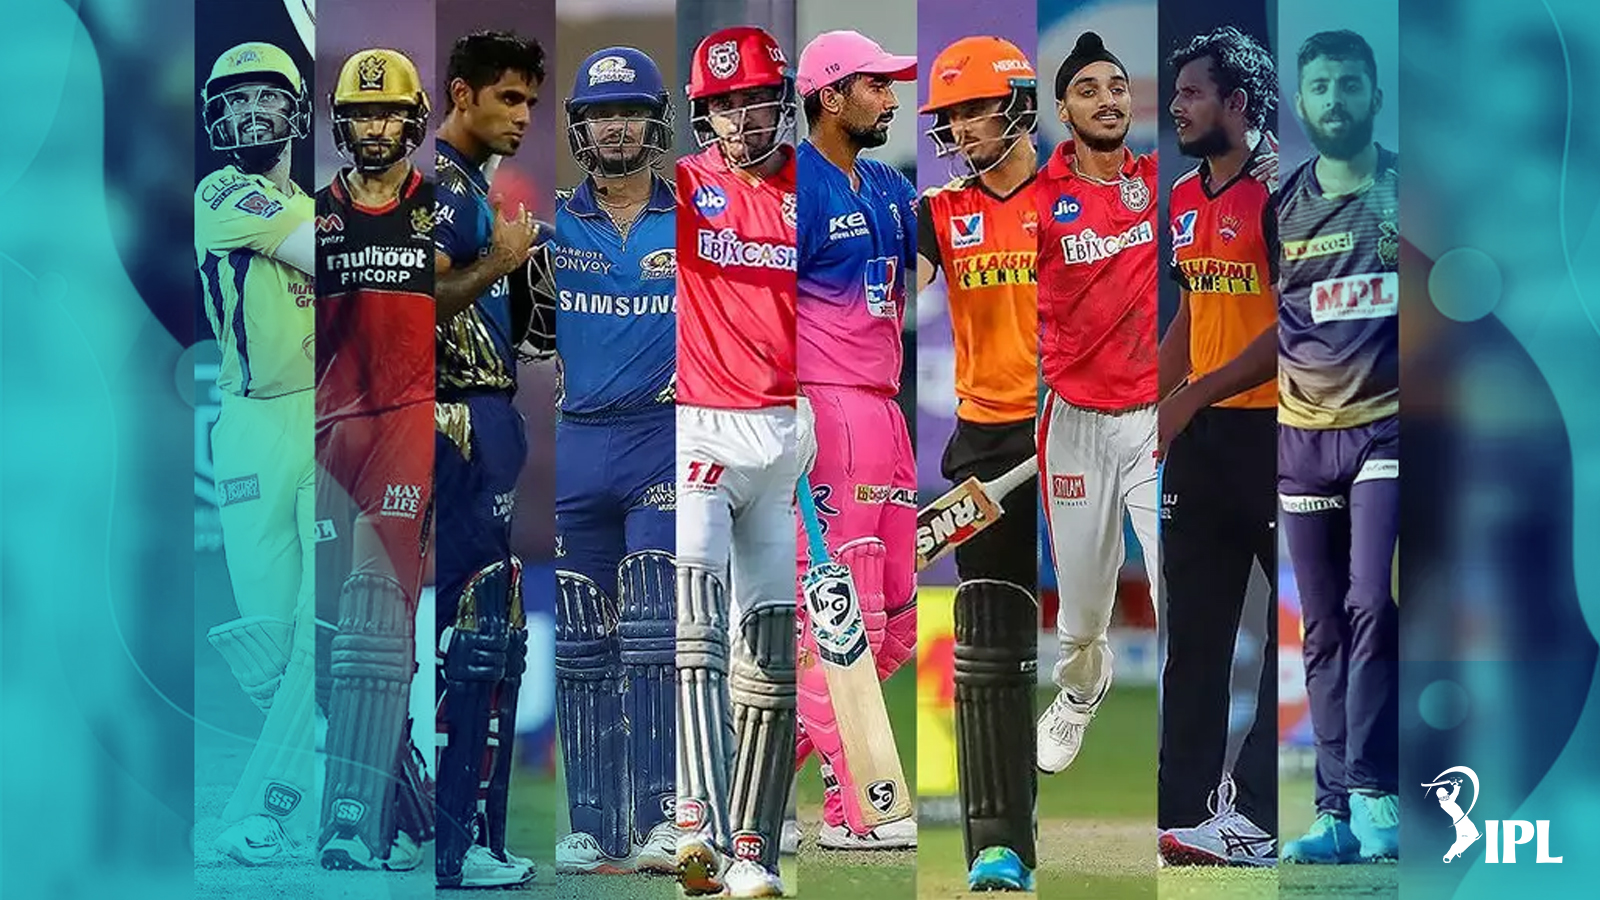 Learn more about IPL cricket teams at our website before starting to bet on them.